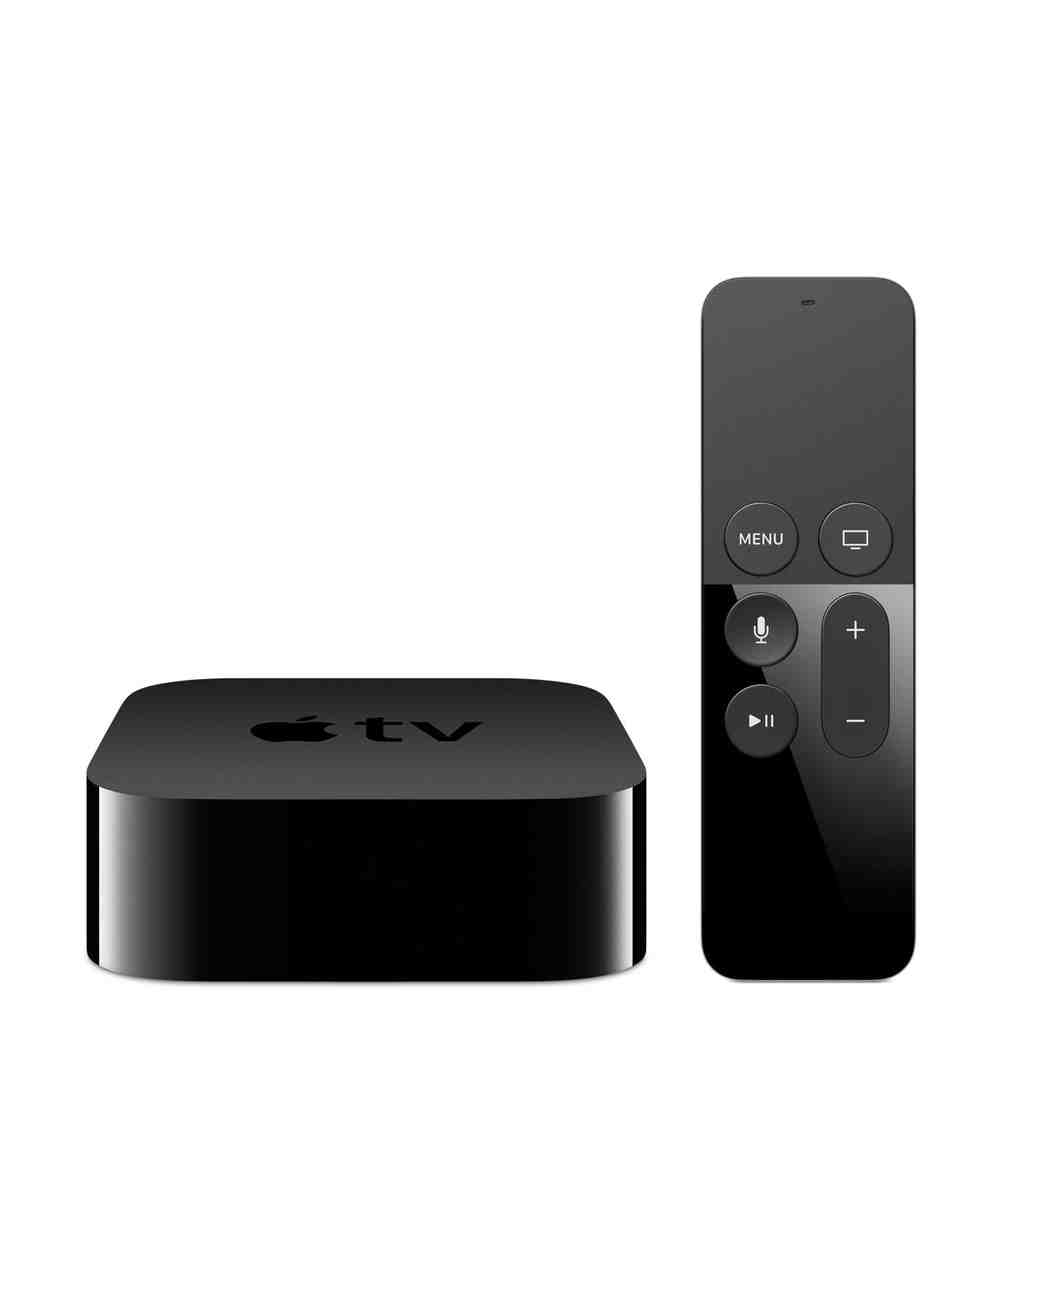 holiday-gift-guide-dad-apple-tv-1215.jpg